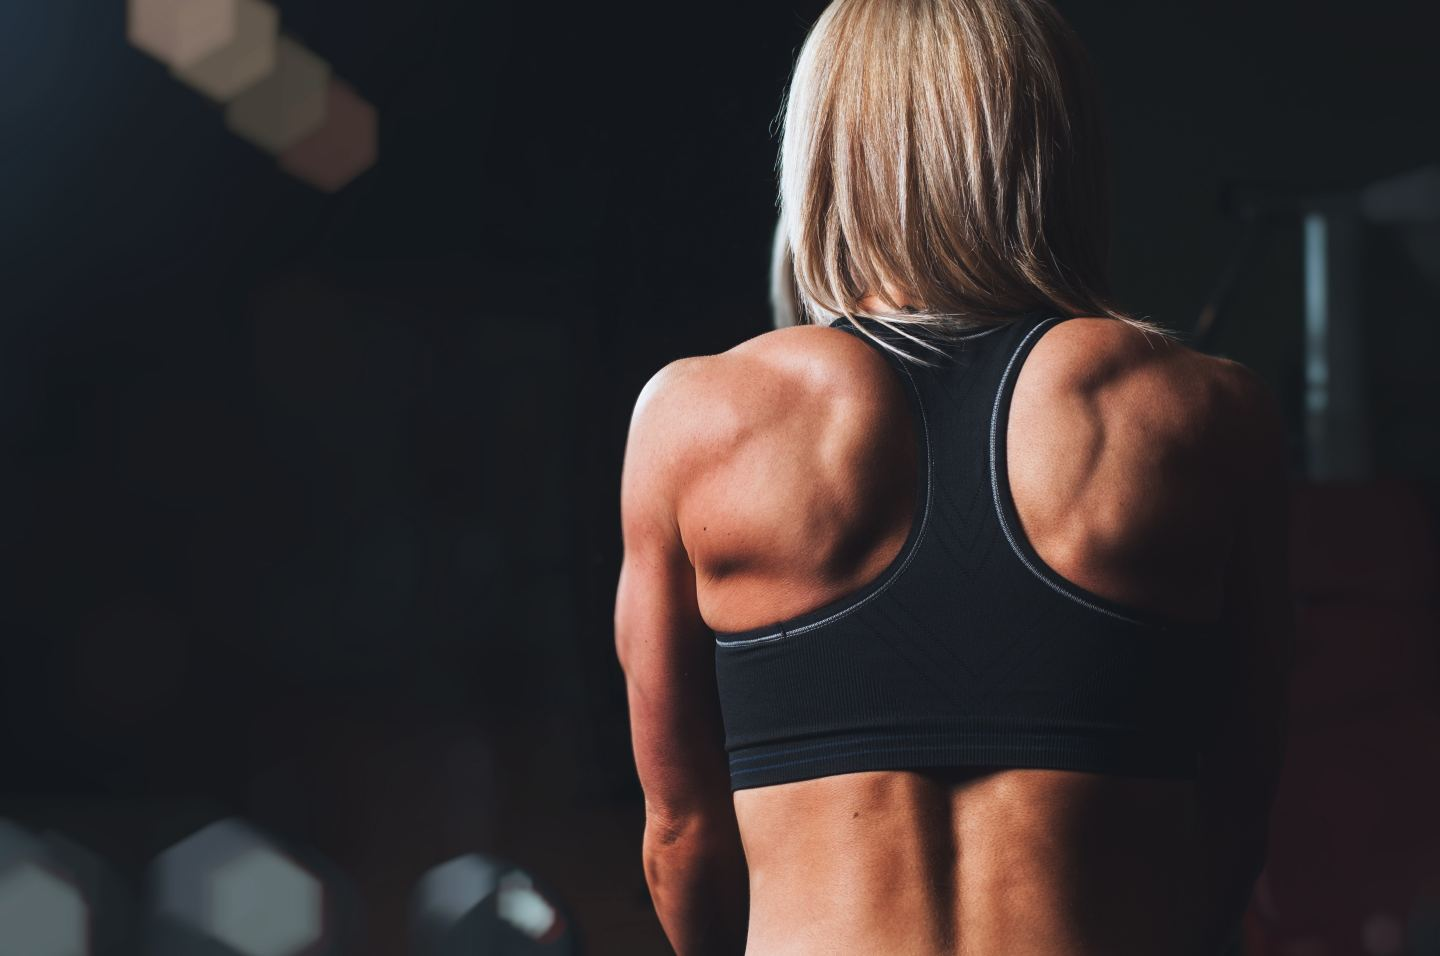 woman back sports bra